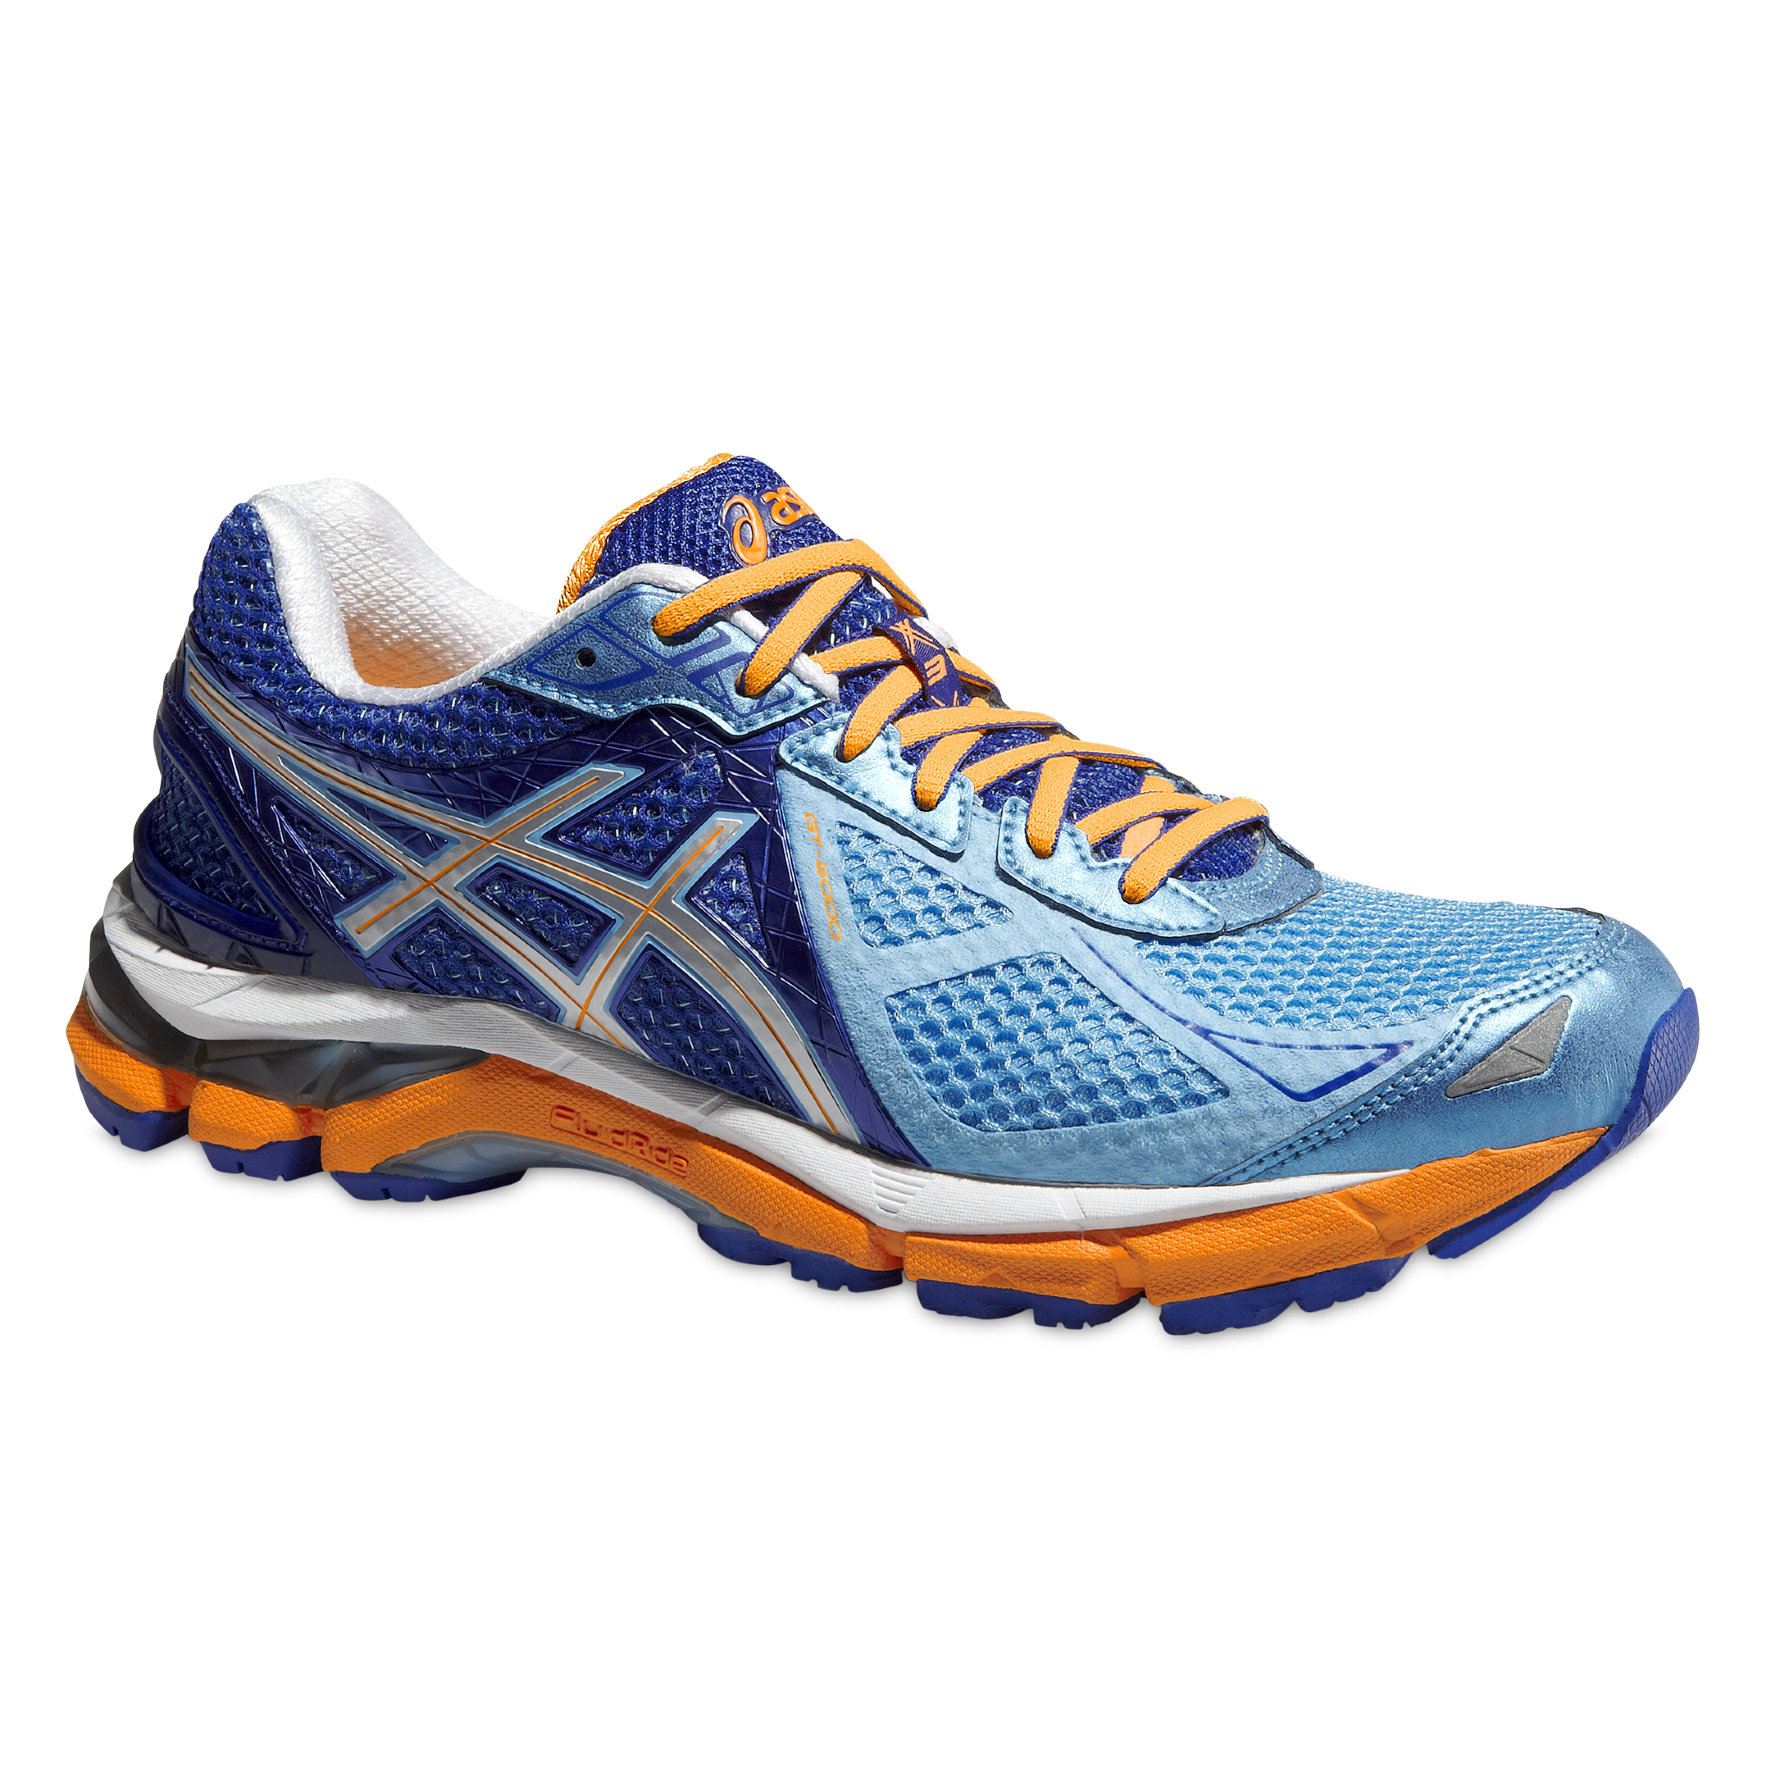 Asics Lady GT 2000 3 2a in Blau/Orange